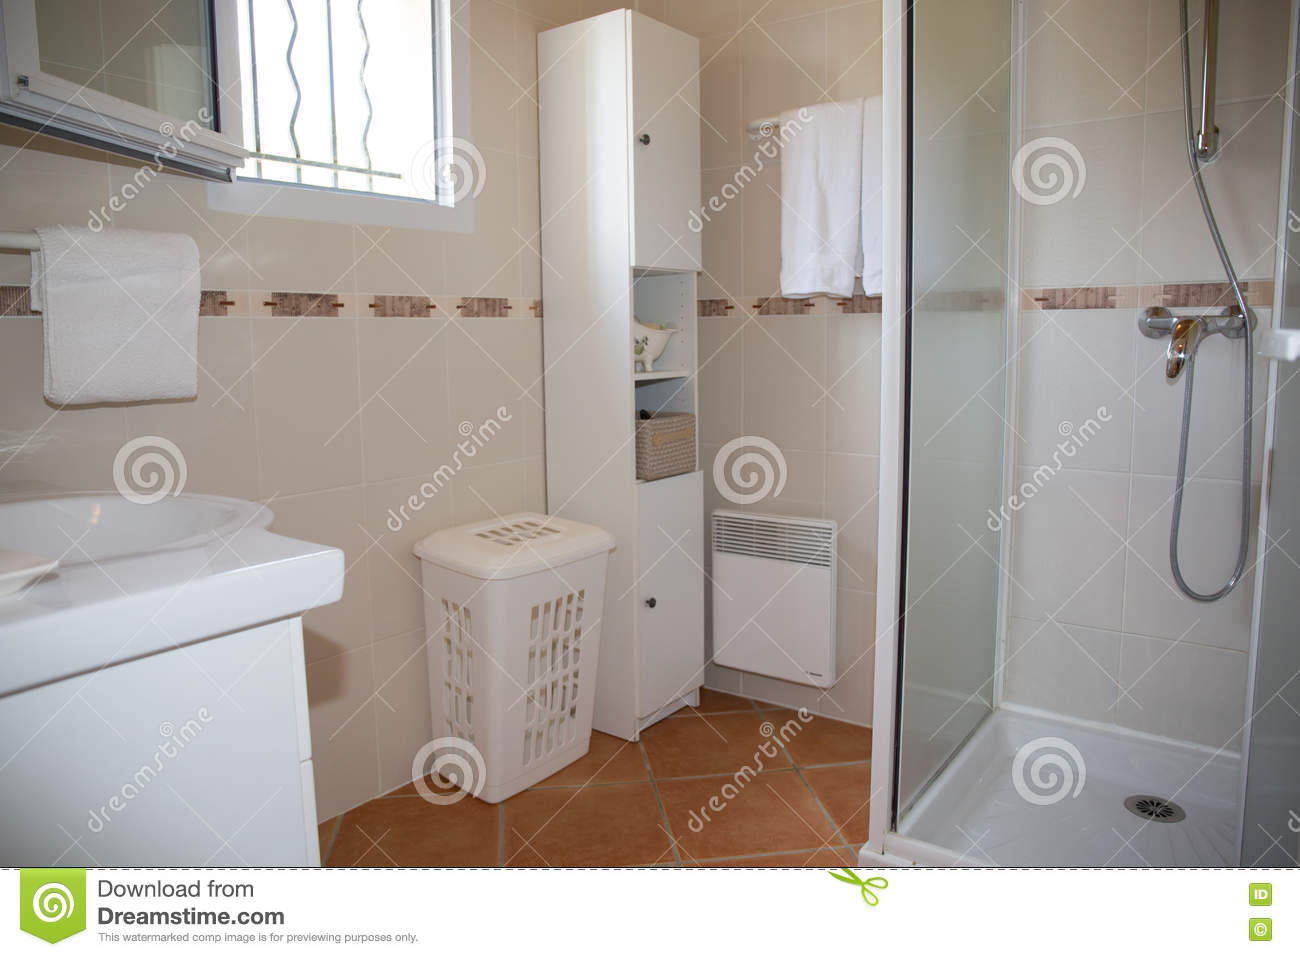 Modern Bathroom With White Ceramic Appliances And Shower Cabin Stock ...